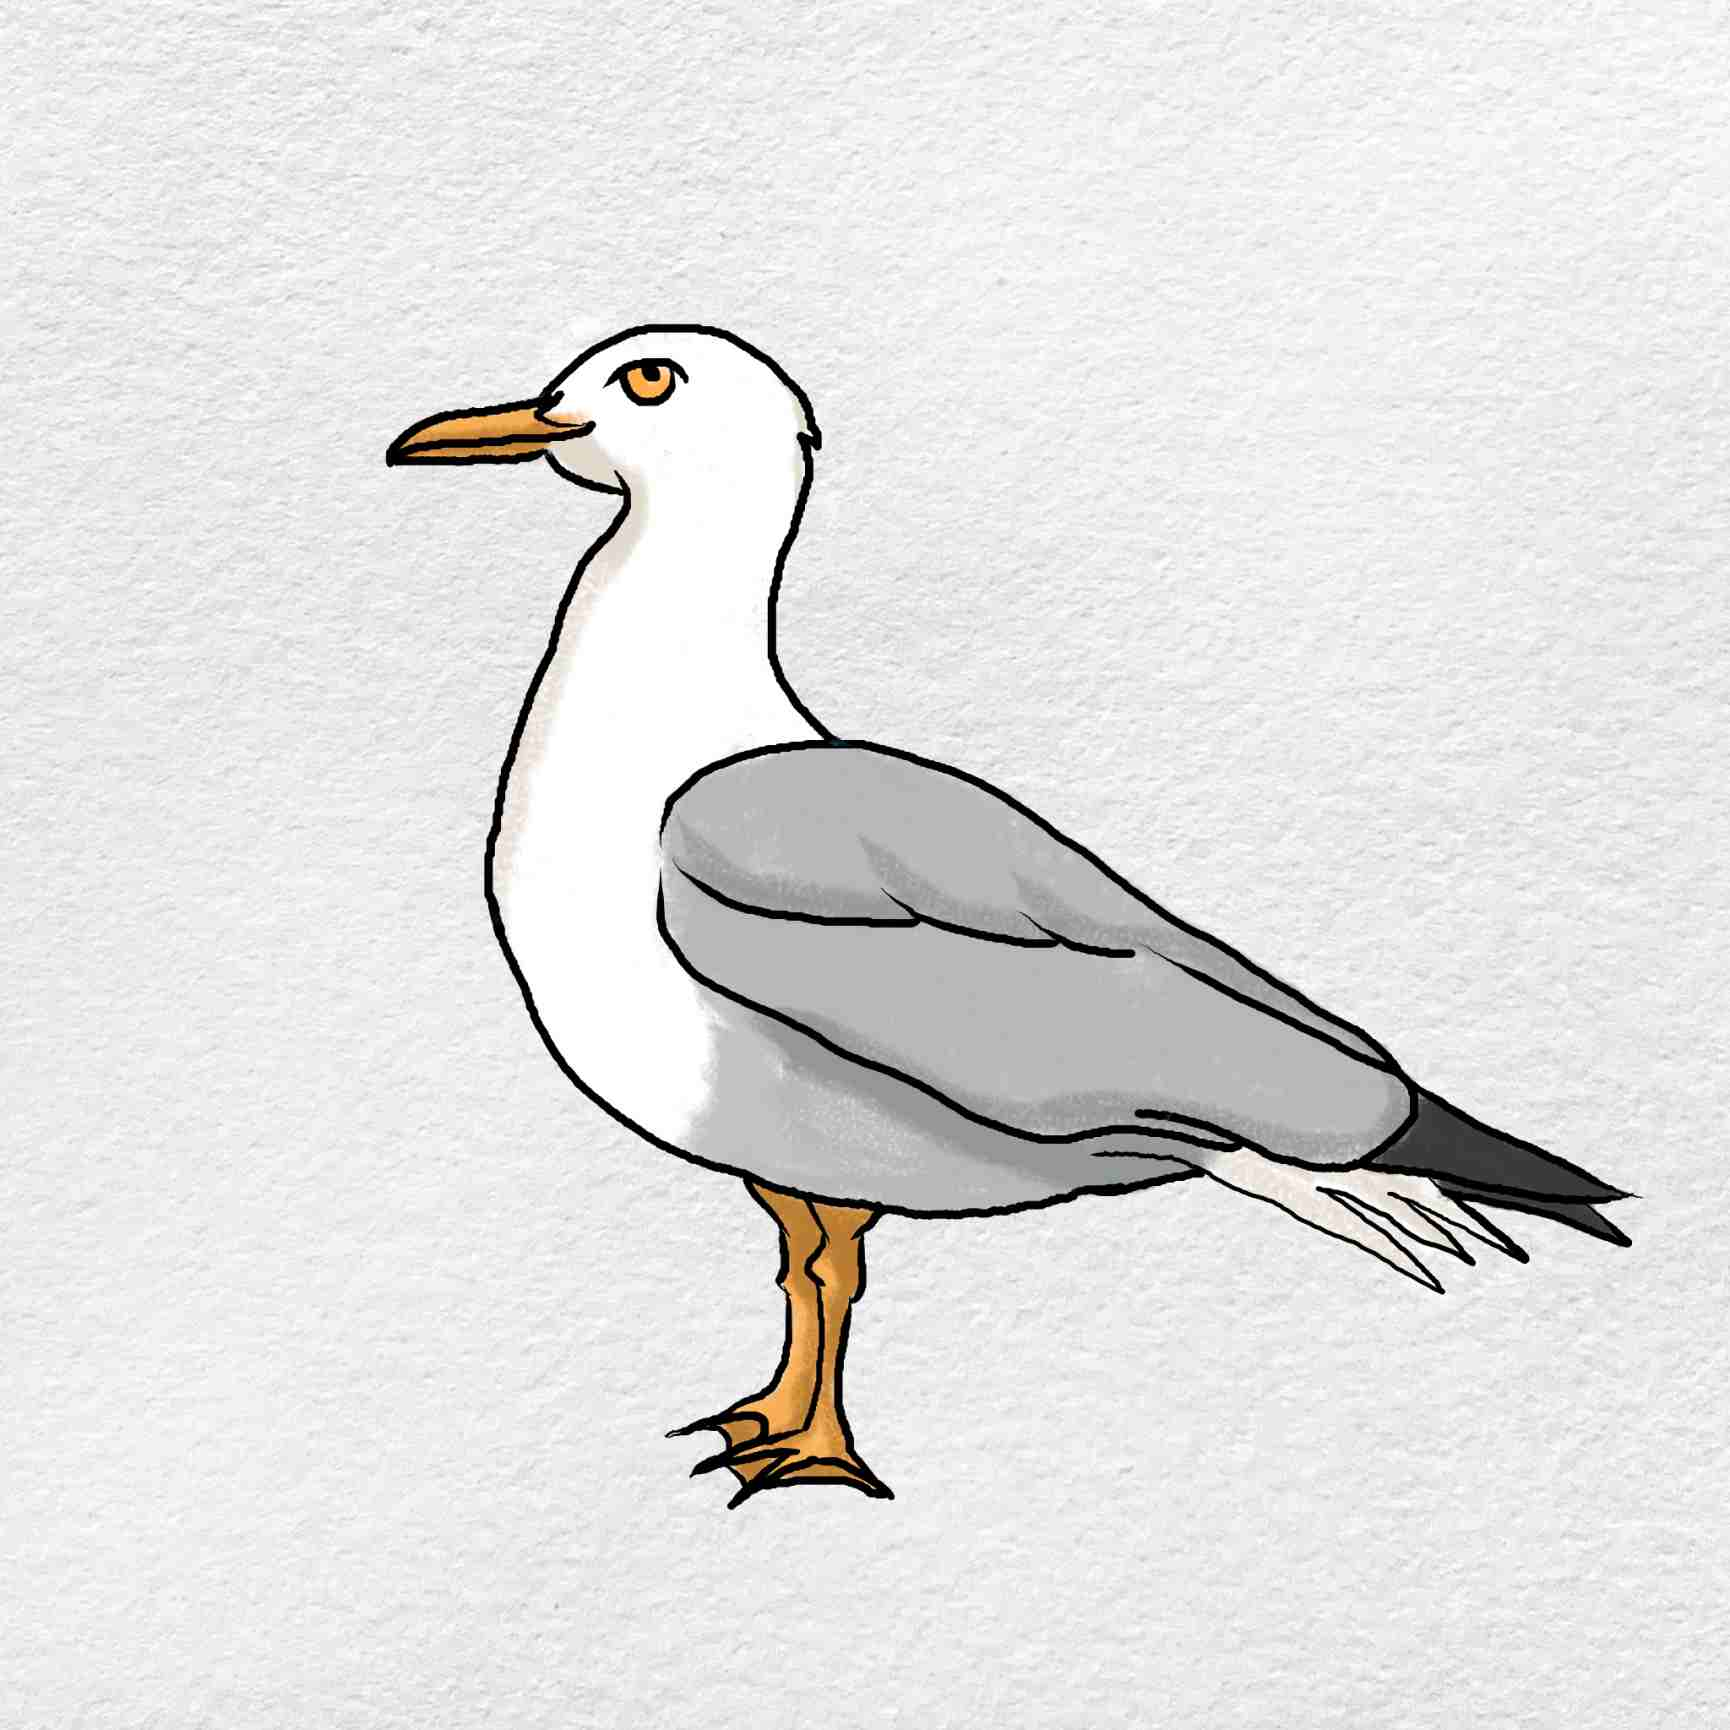 How To Draw A Seagull: Step 6